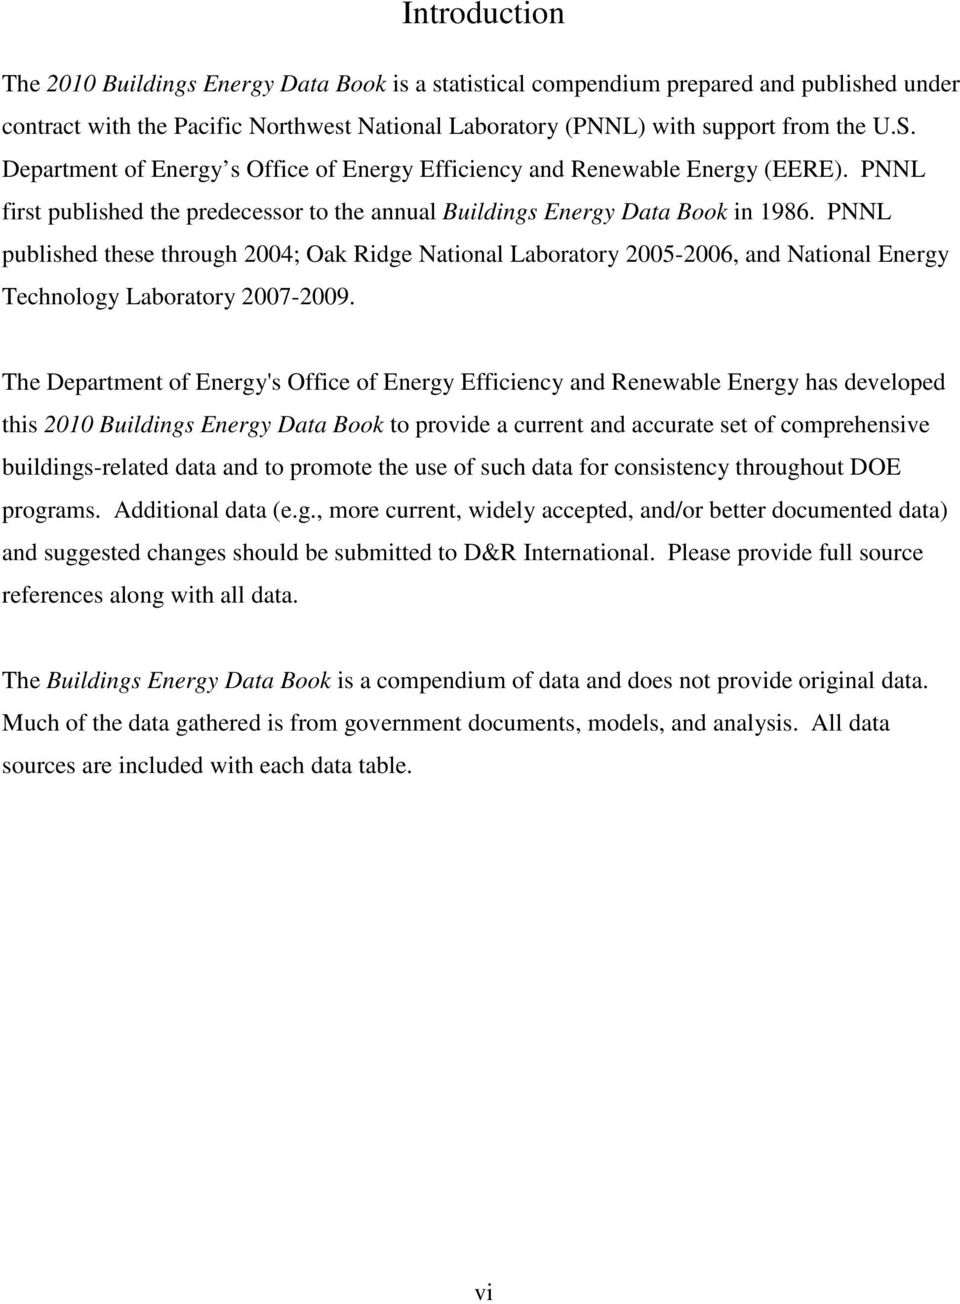 PNNL published these through 2004; Oak Ridge National Laboratory 2005-2006, and National Energy Technology Laboratory 2007-2009.